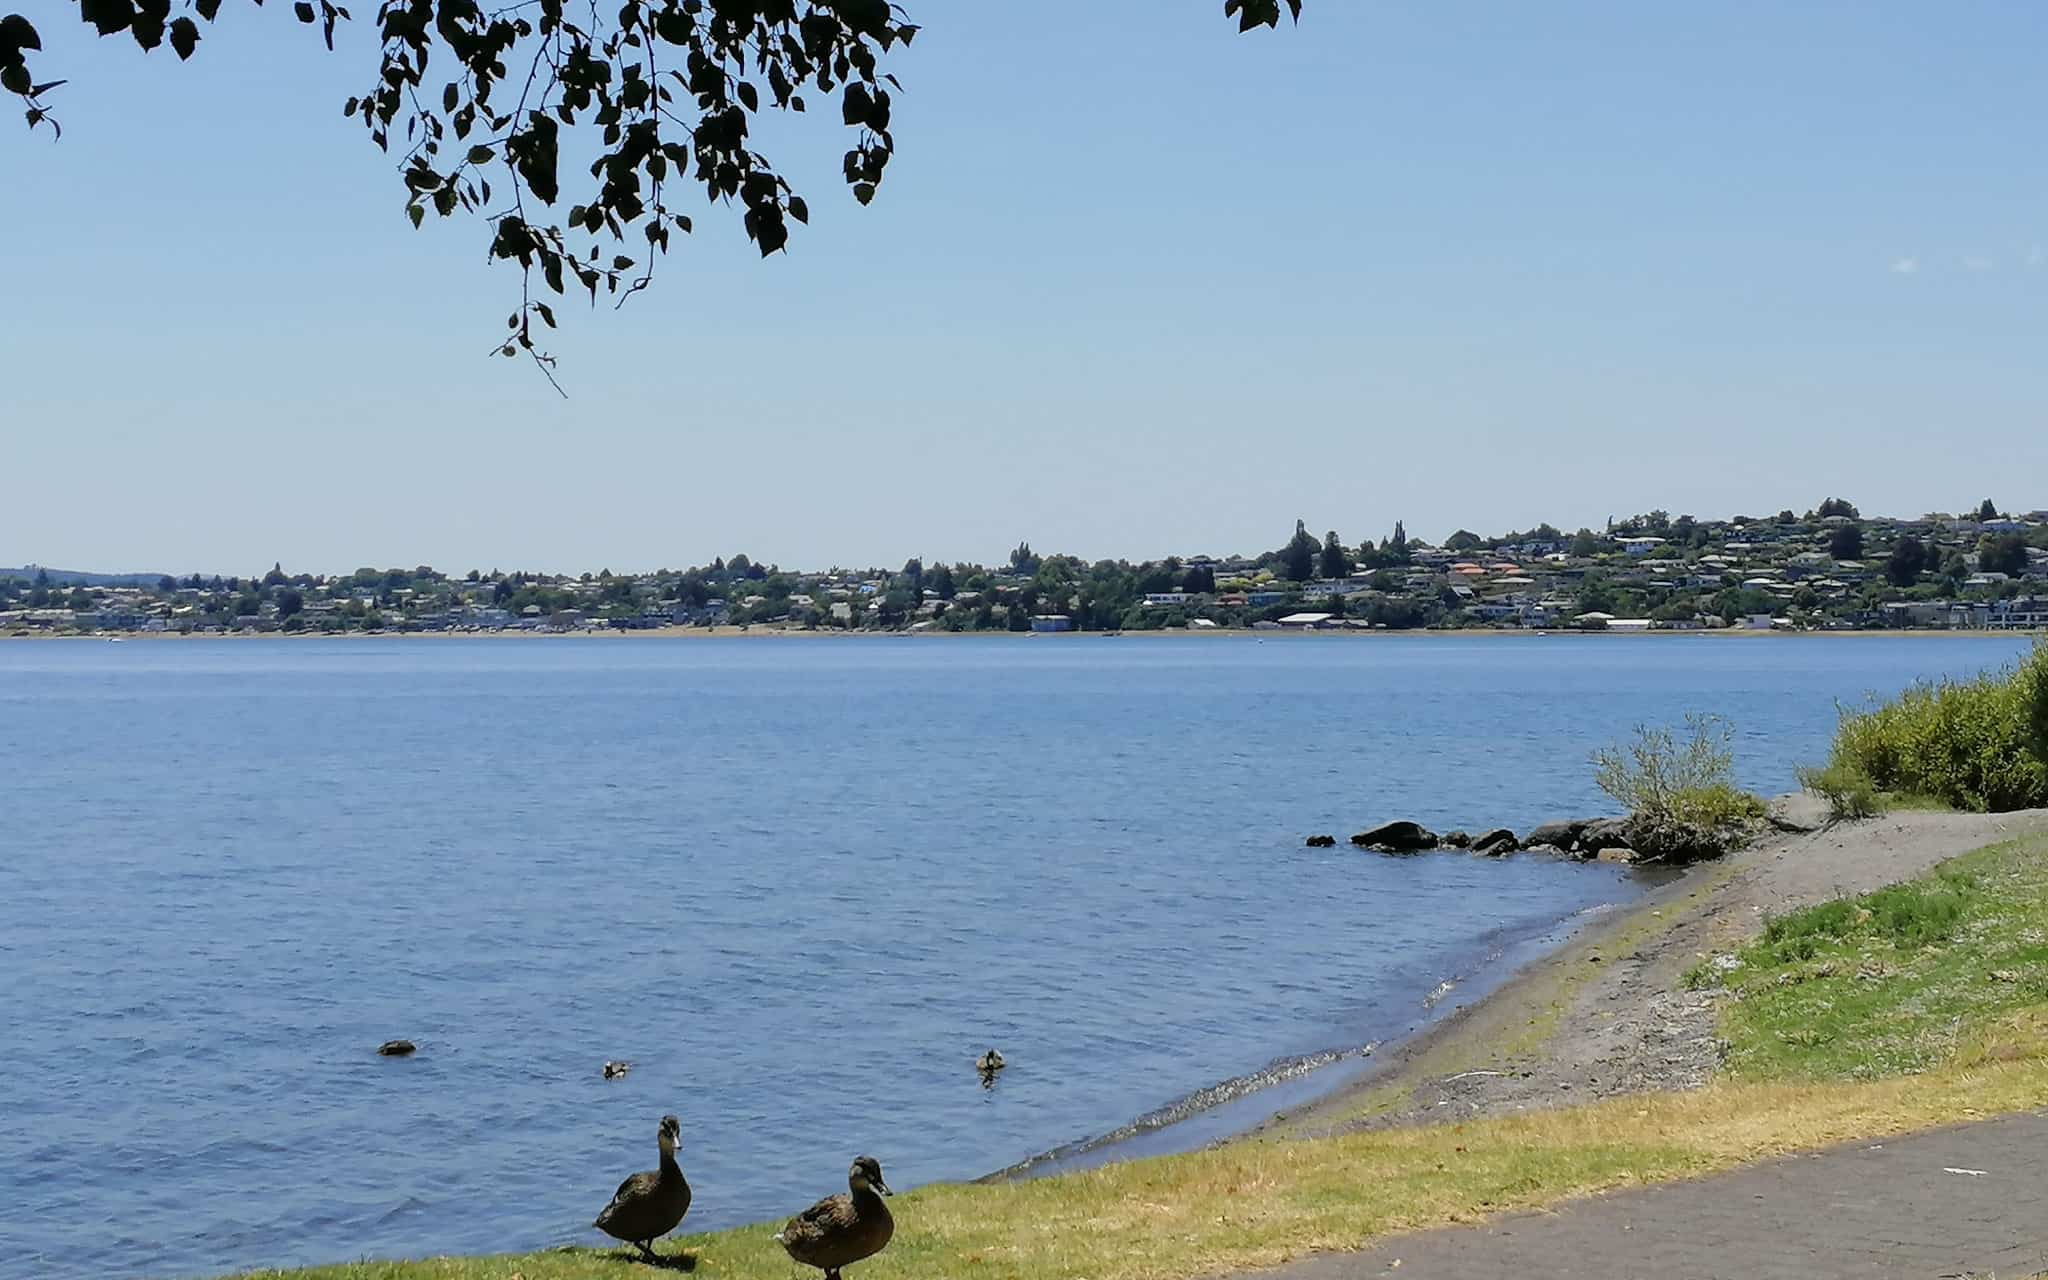 Stay-in-Taupo-Accommodation-Bed-and-Breakfast-in-Taupo-Waikato-New-Zealand-16